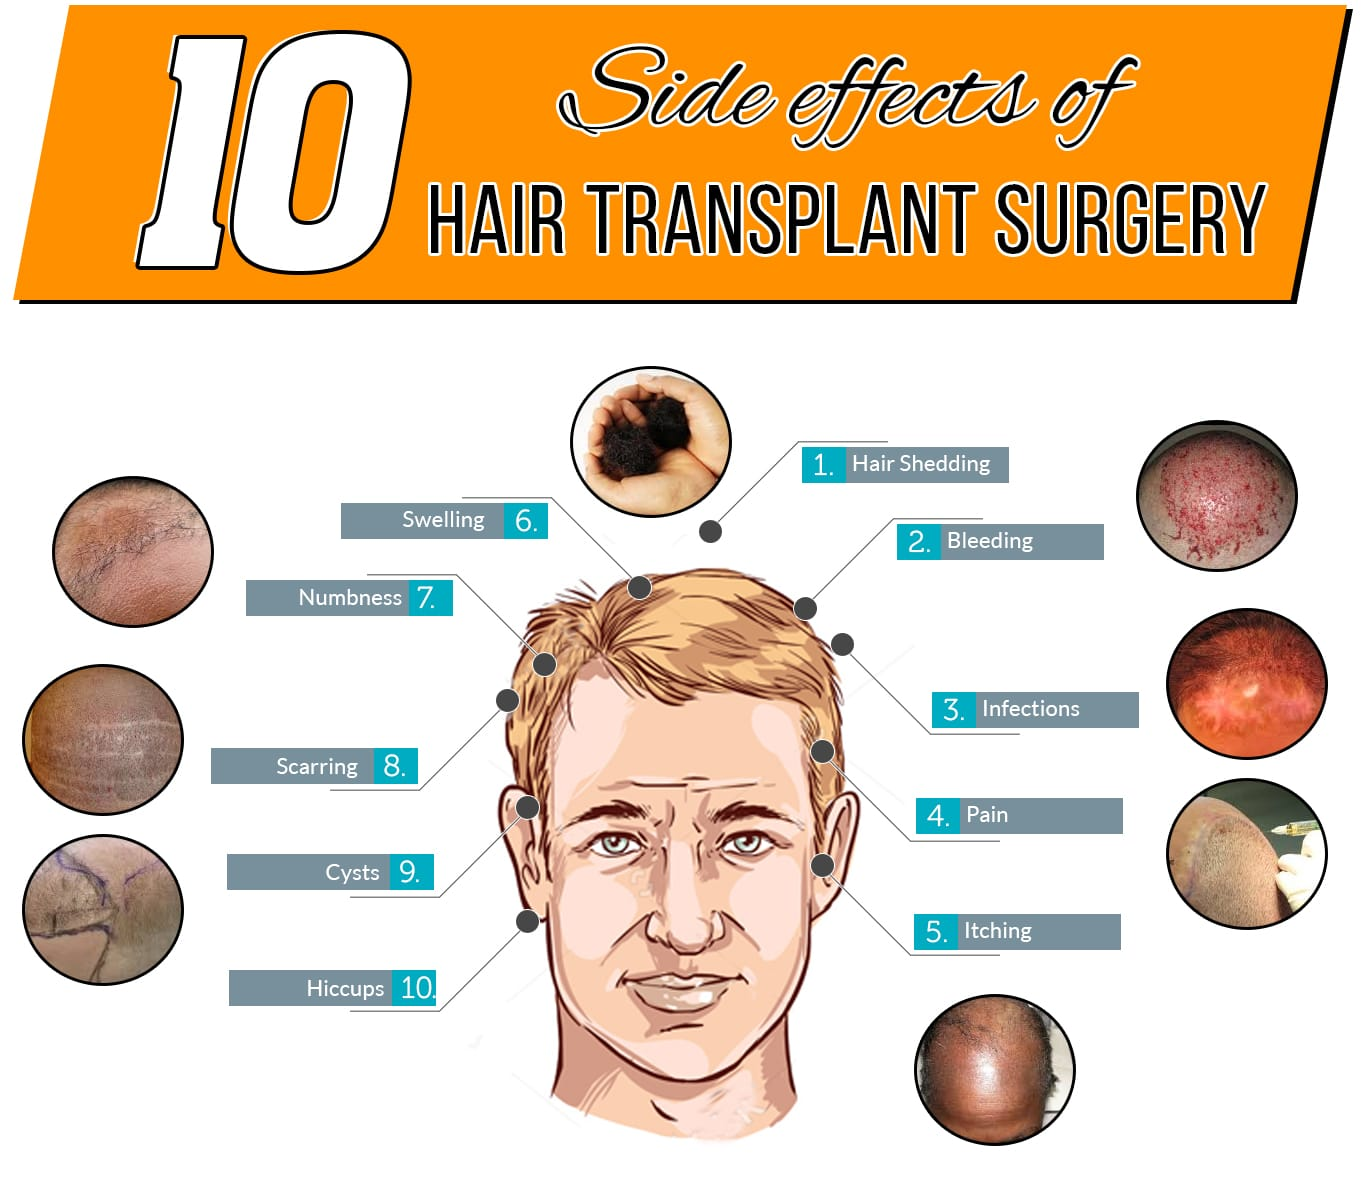 Are There Any Complications With Hair Transplantation?